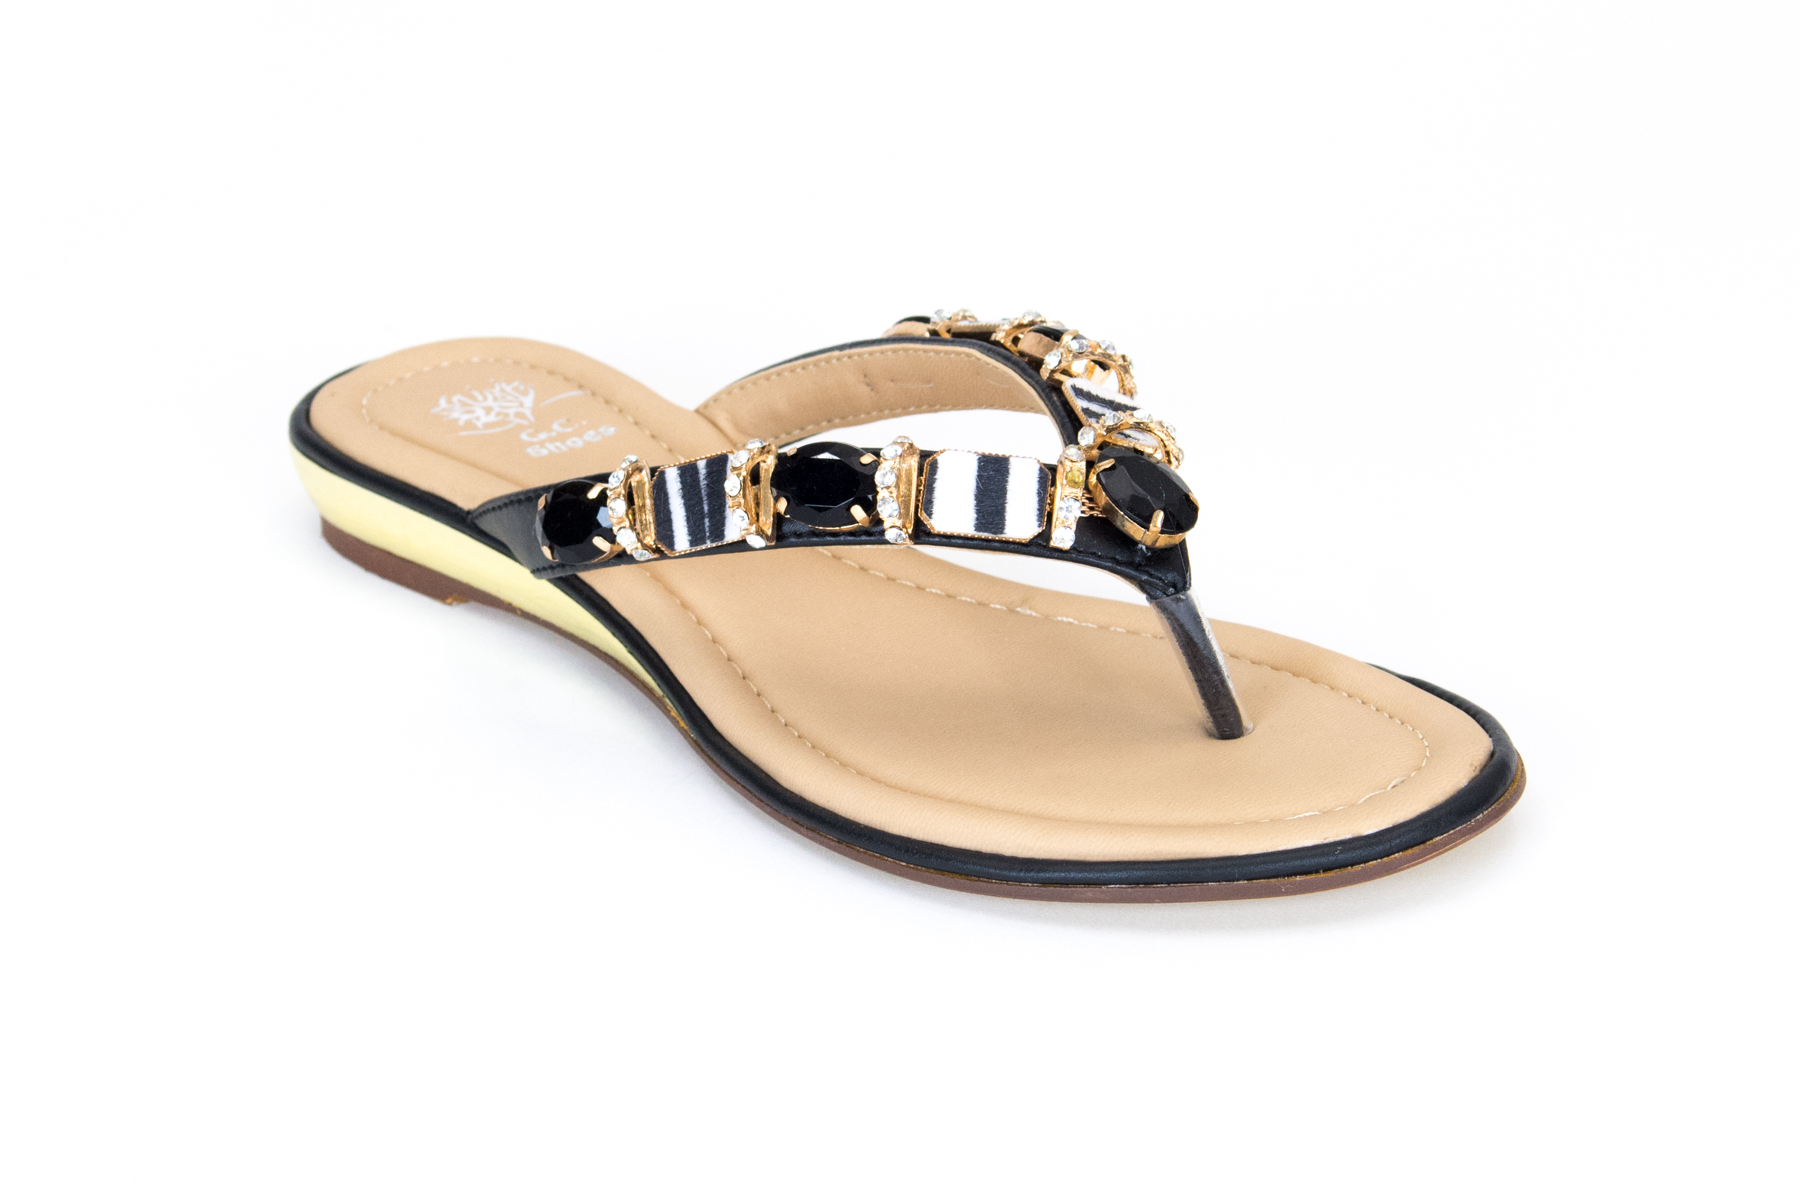 Thong Sandal with Rhinestones